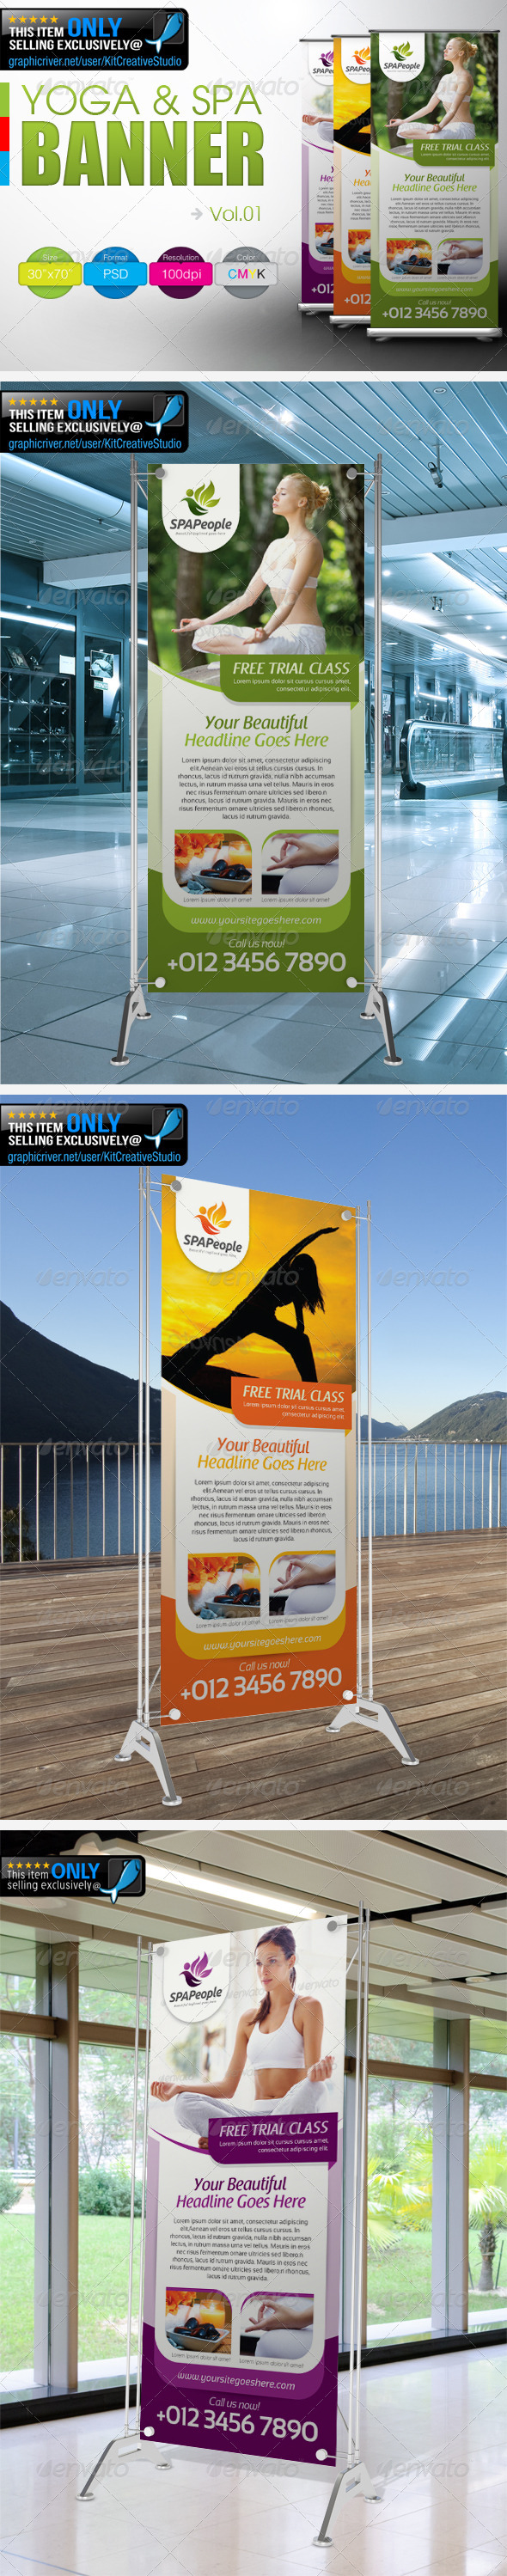 Simple Yoga & SPA Banner Vol.1 - Signage Print Templates